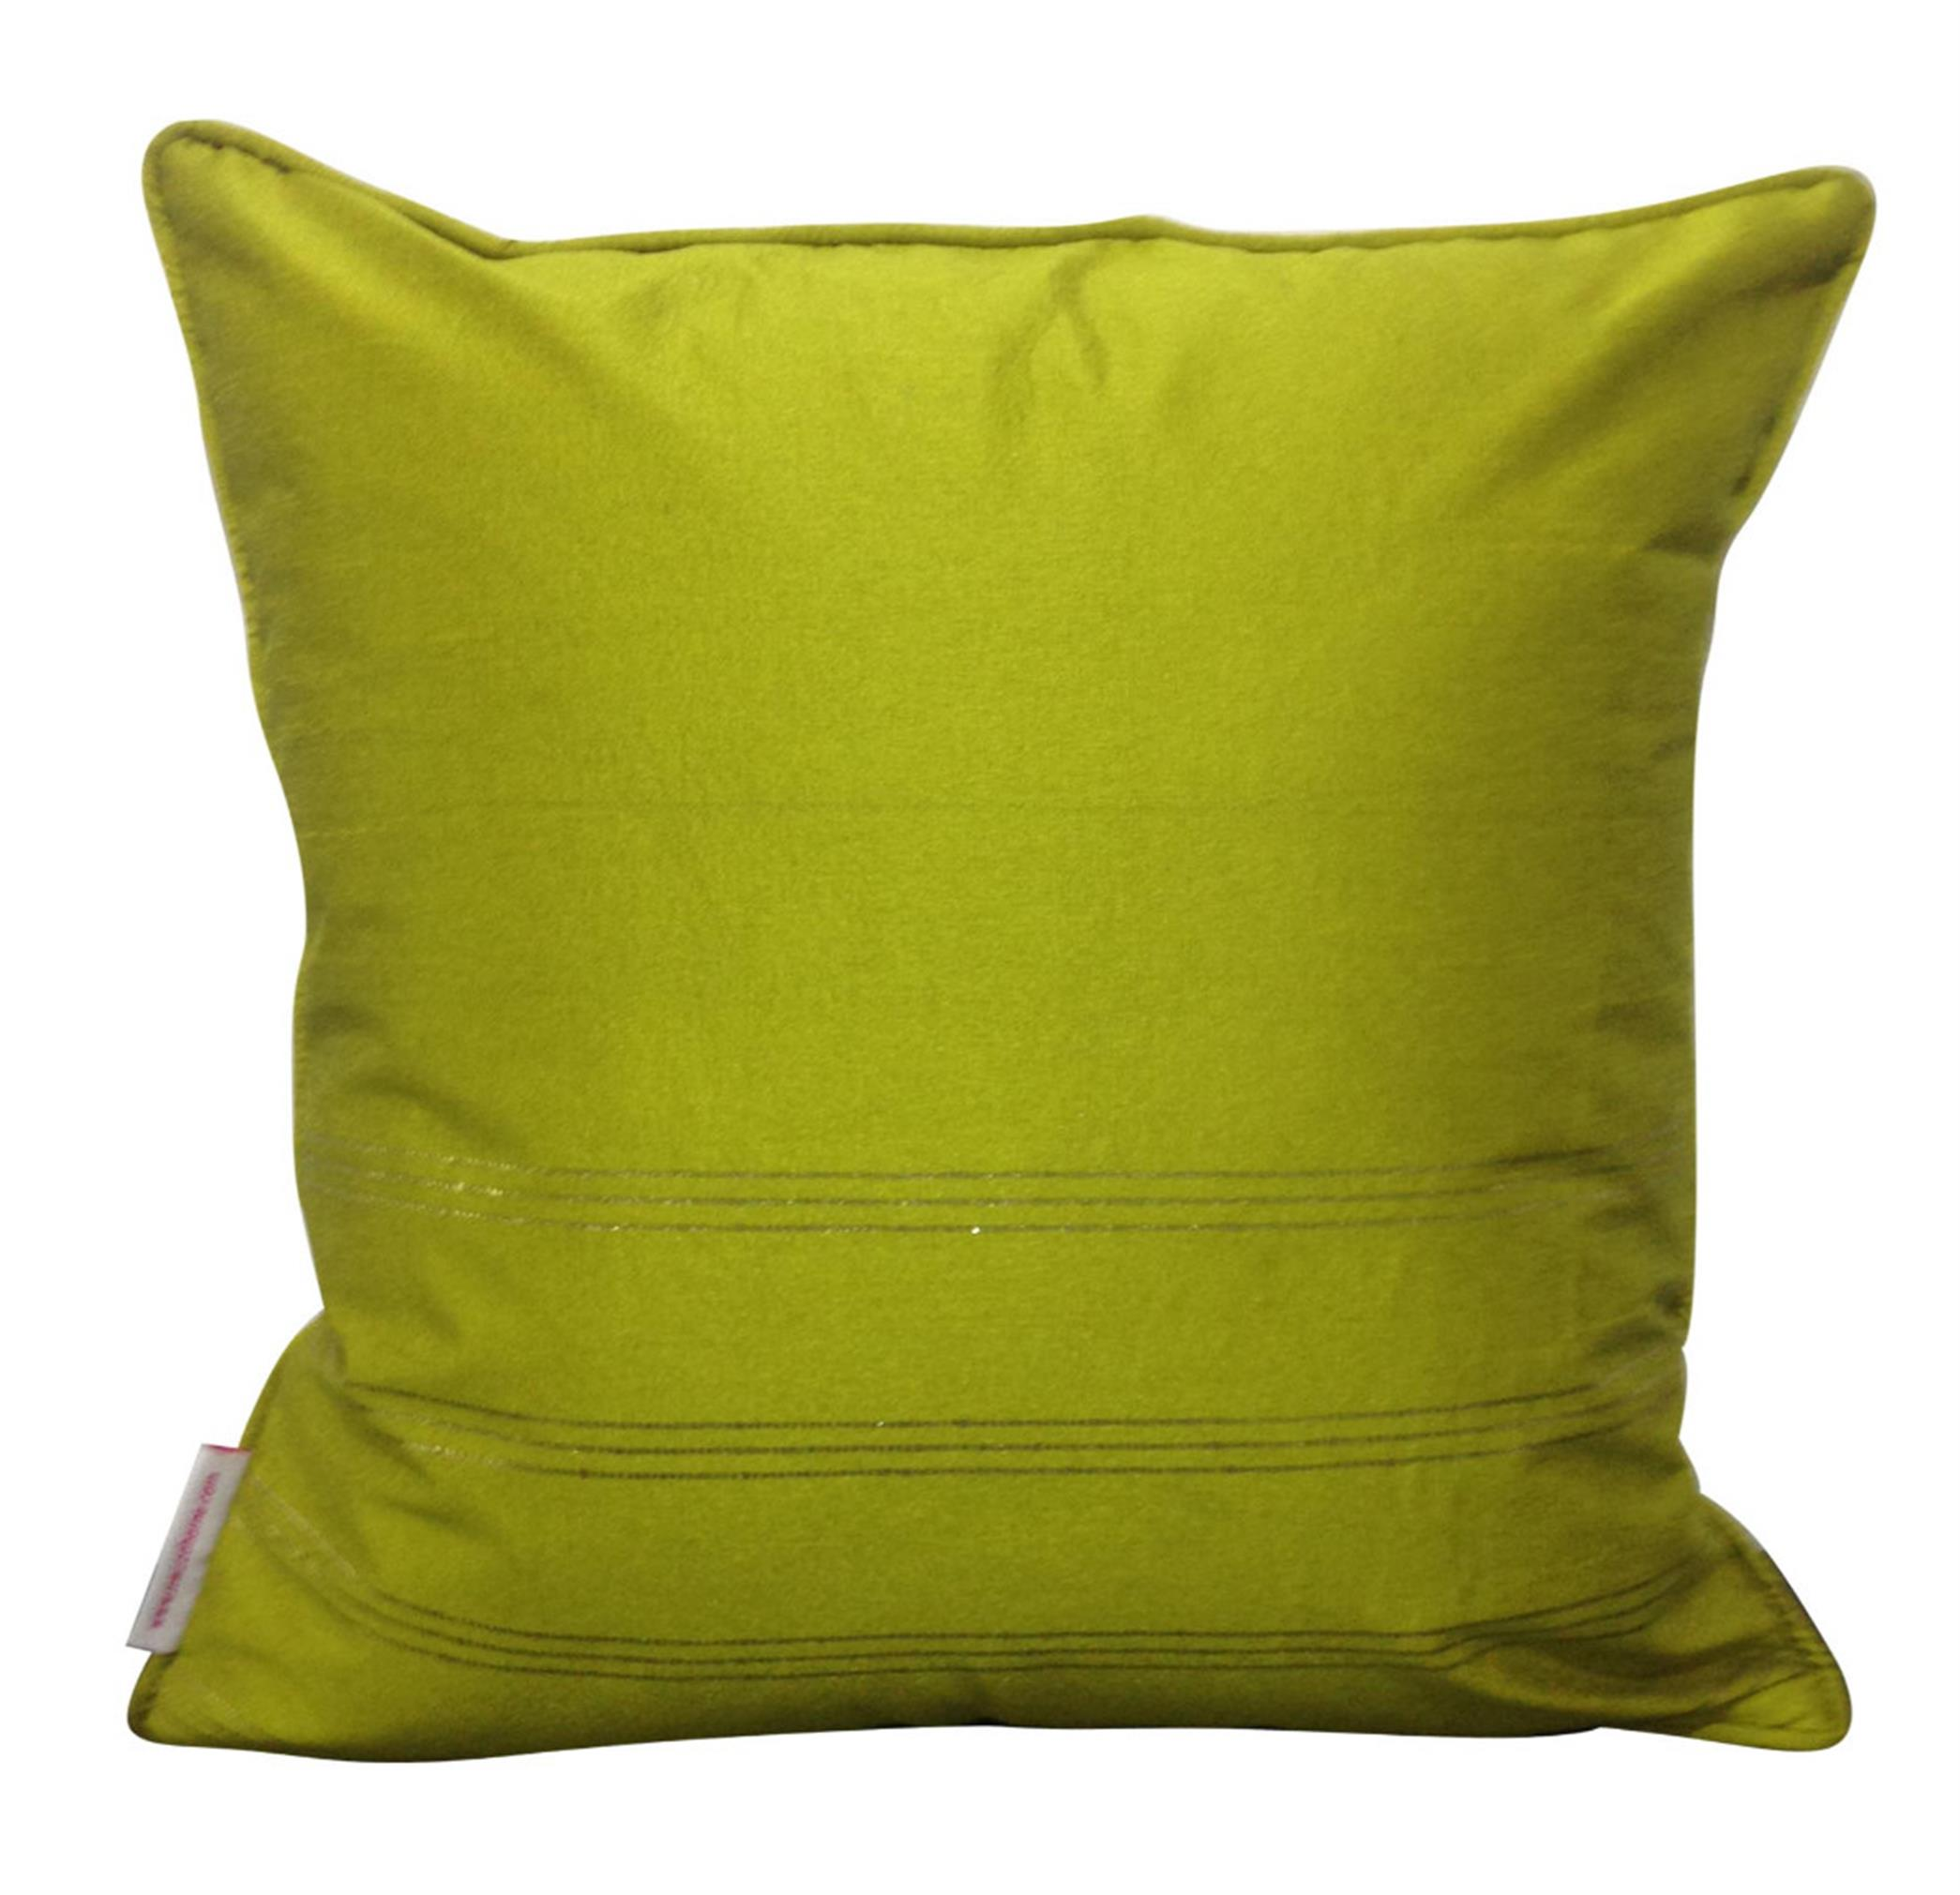 Double Sided Mustard Gold Buti Cushion Cover